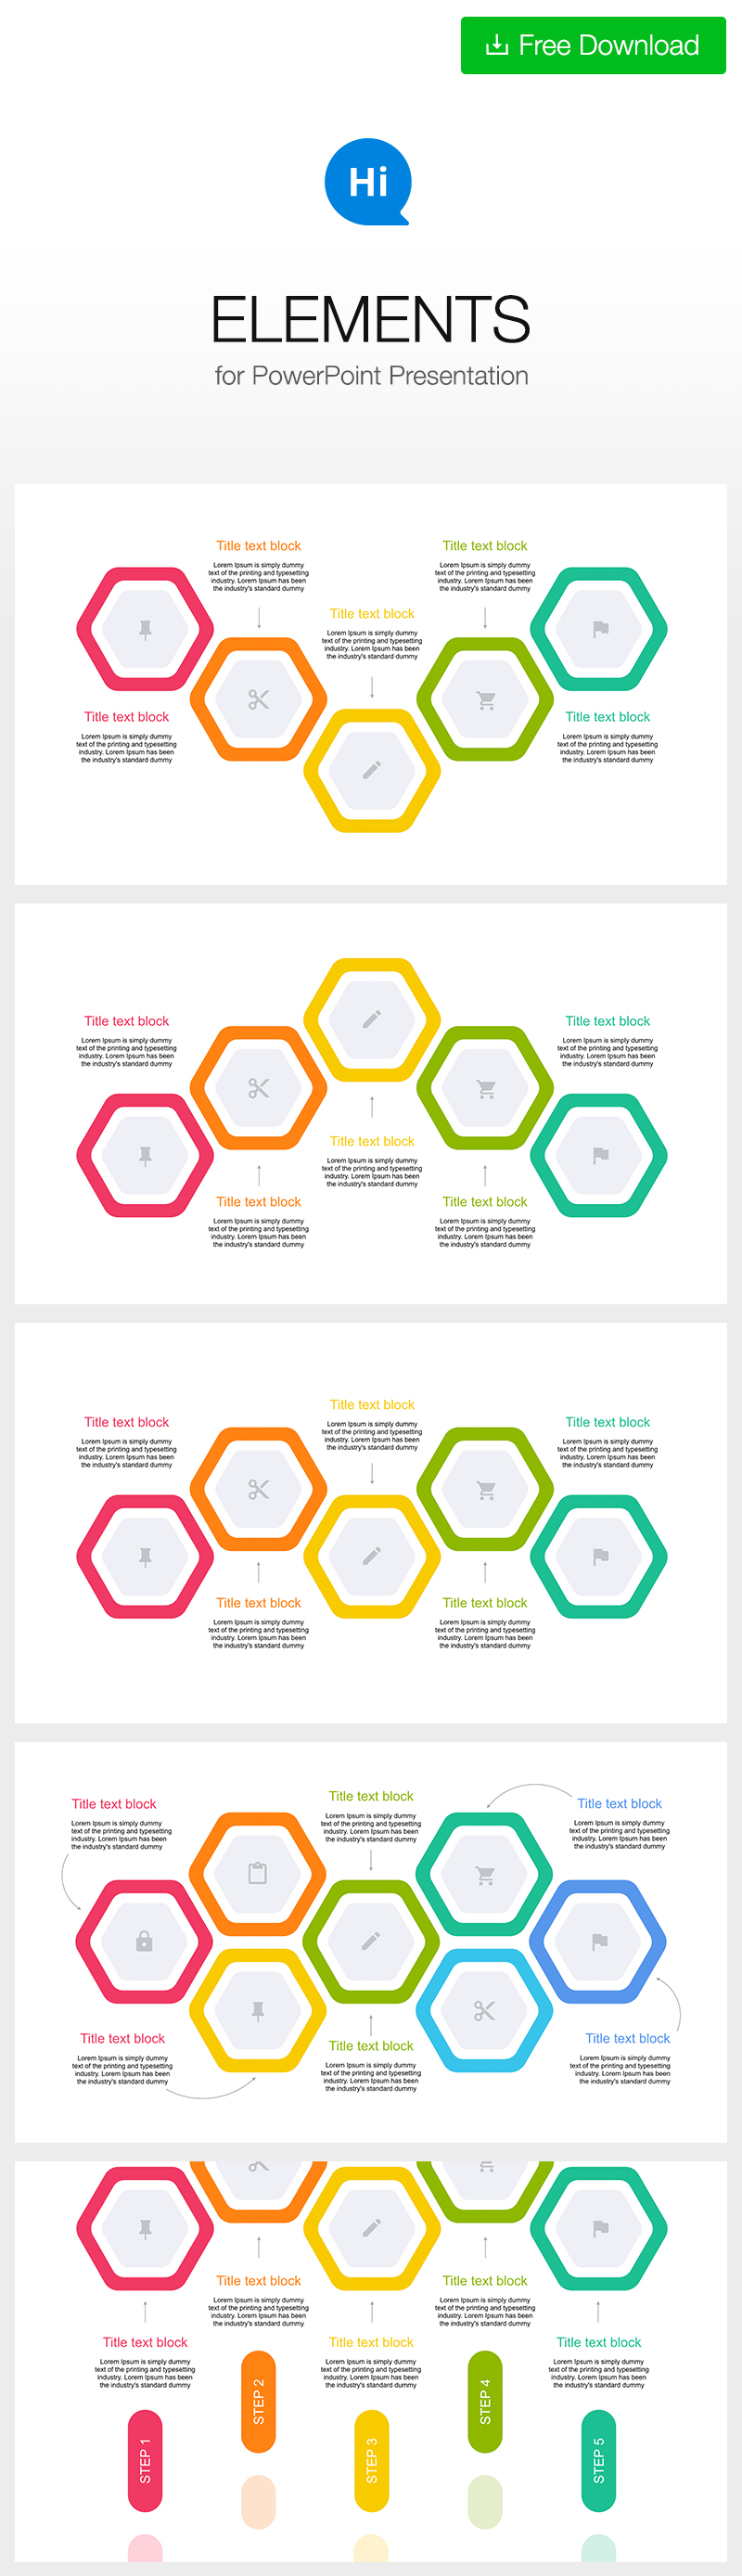 Hexagon Diagram 5 Step For Powerpoint Design Inspiration Each Of The Elements Is Created As A Polygon Infographic Ppt Dowload Free Https